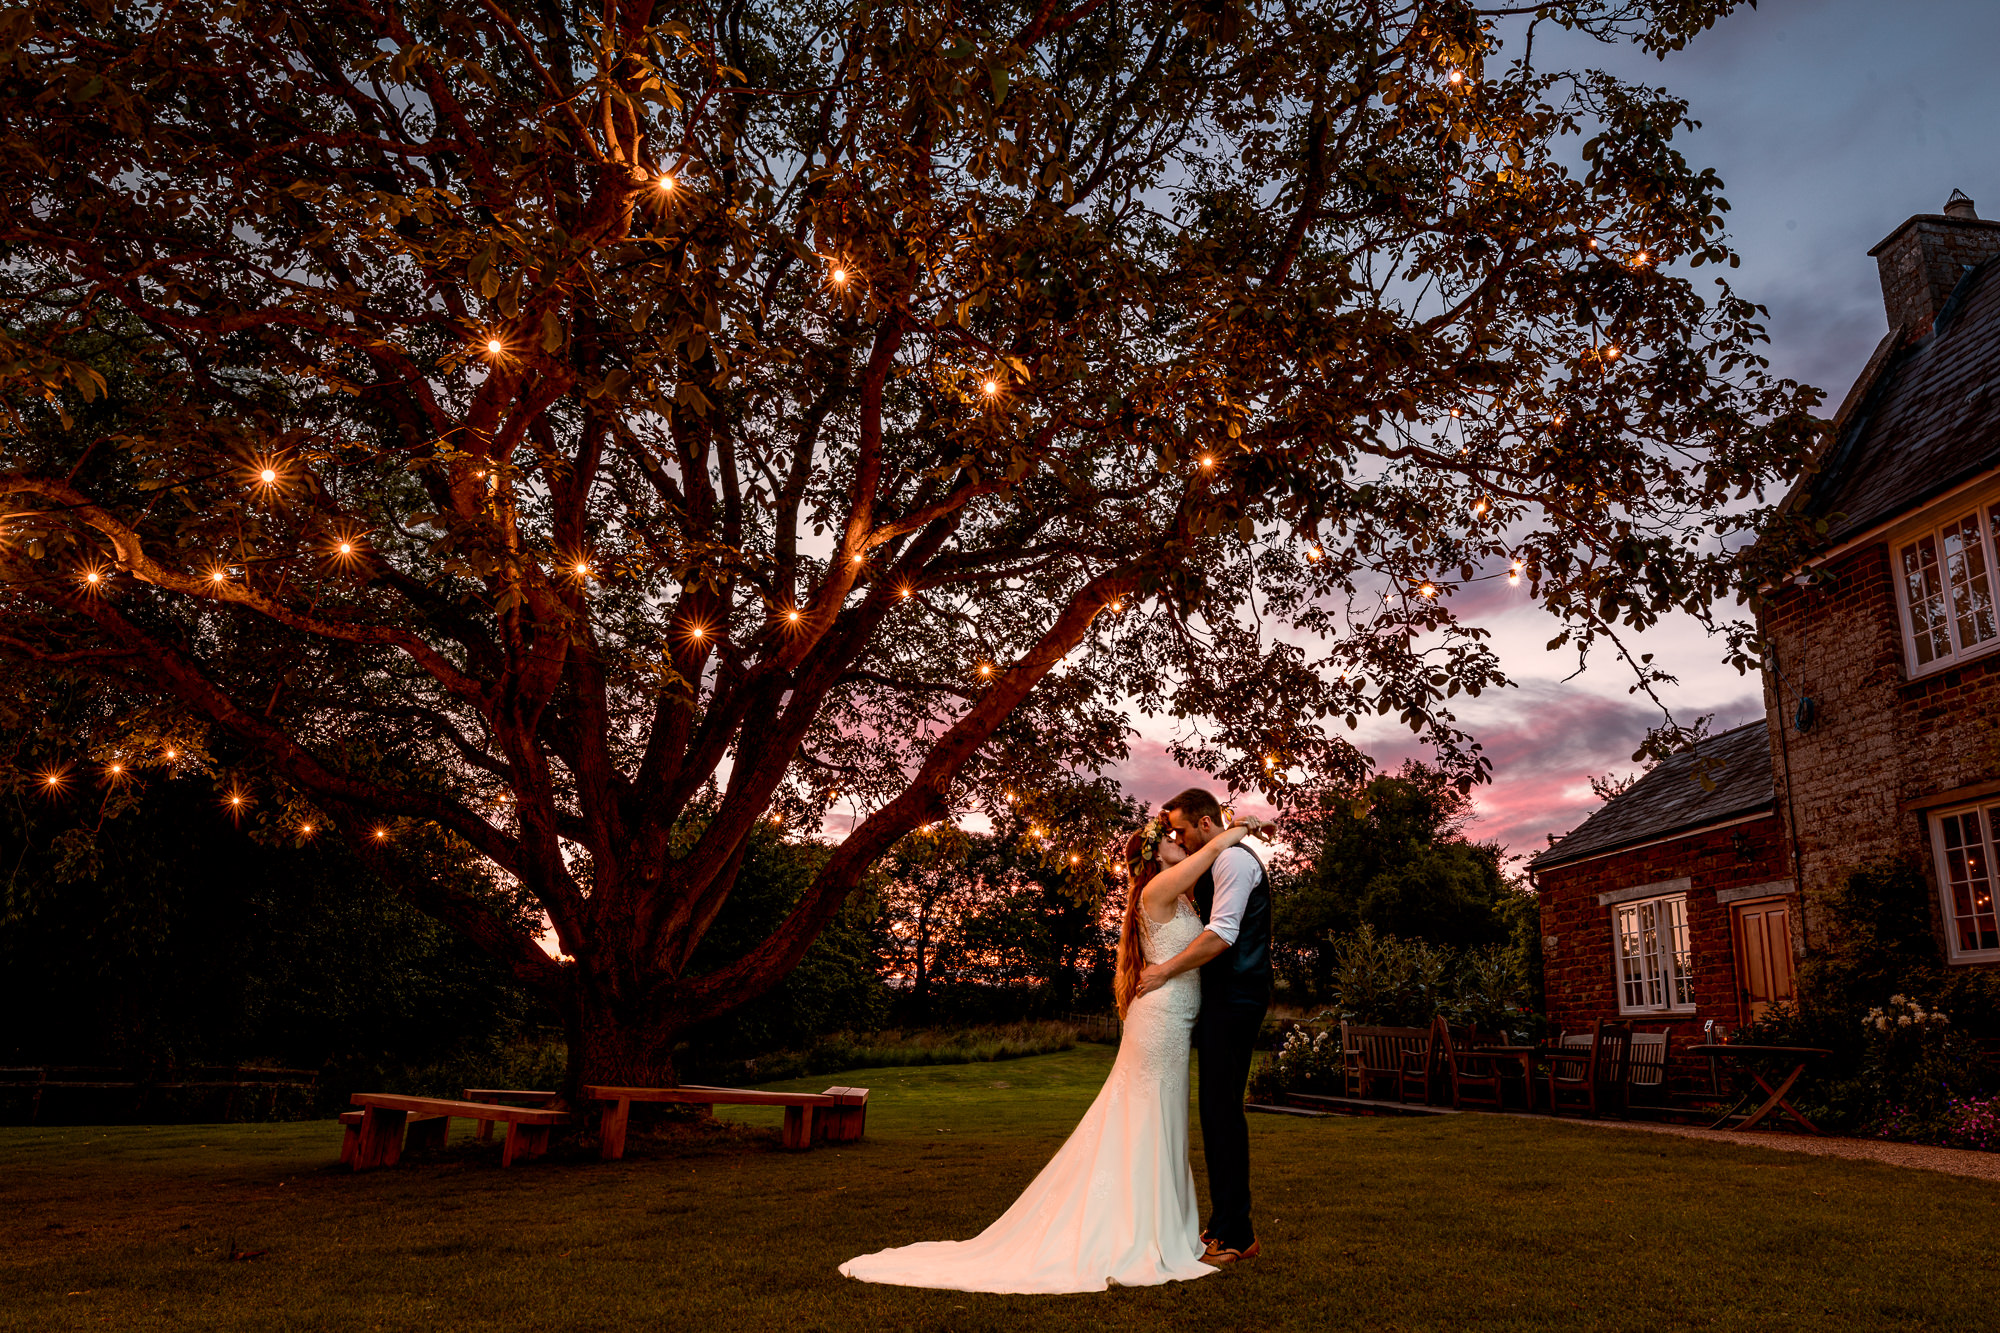 Crockwell Farm Wedding Photography, Couple under Sunset Tree